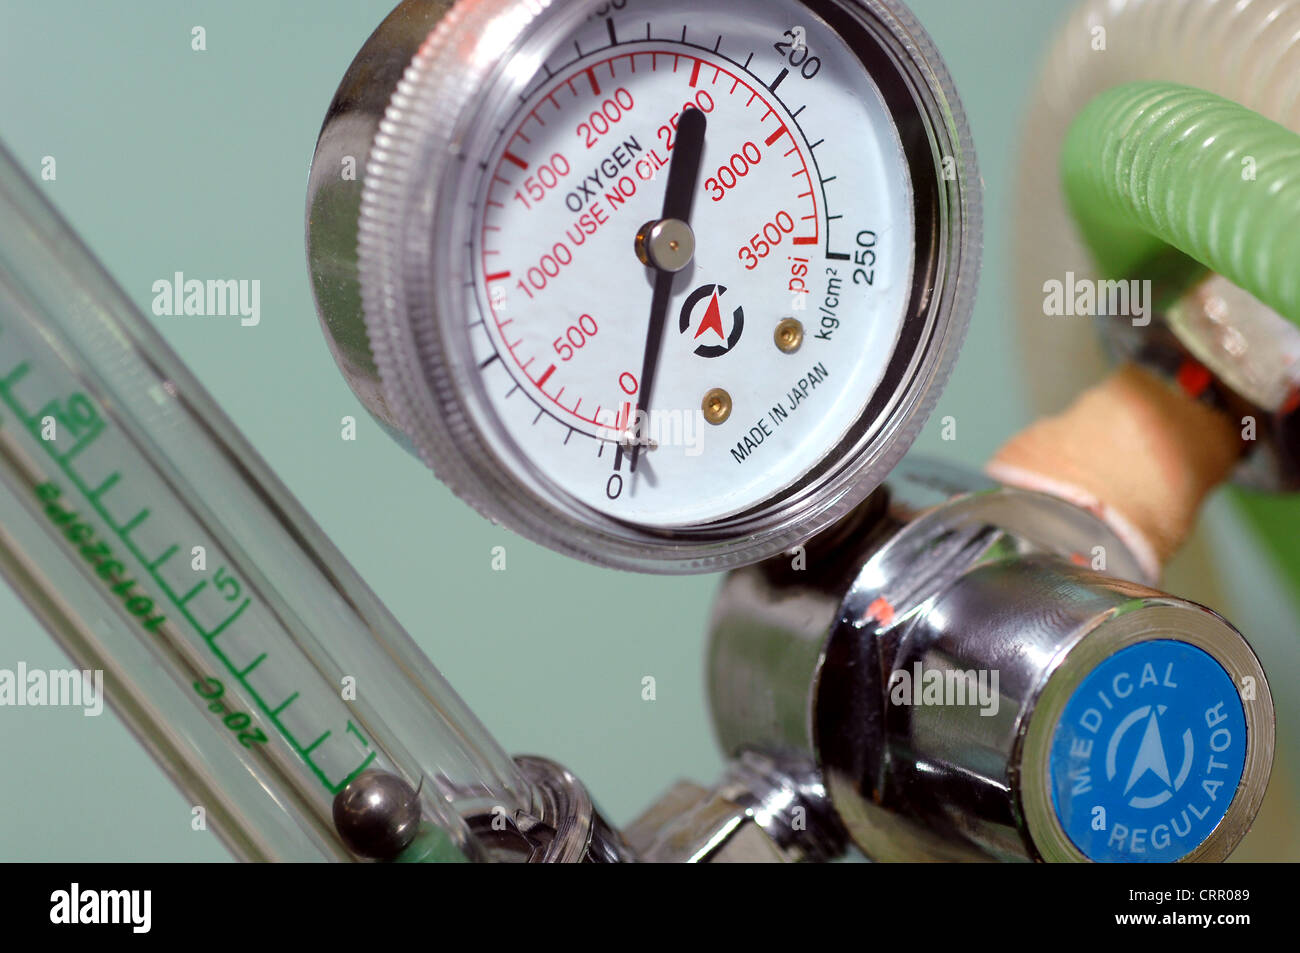 Close up of a pressure meters for oxygen tanks, attached to a regulator - Stock Image